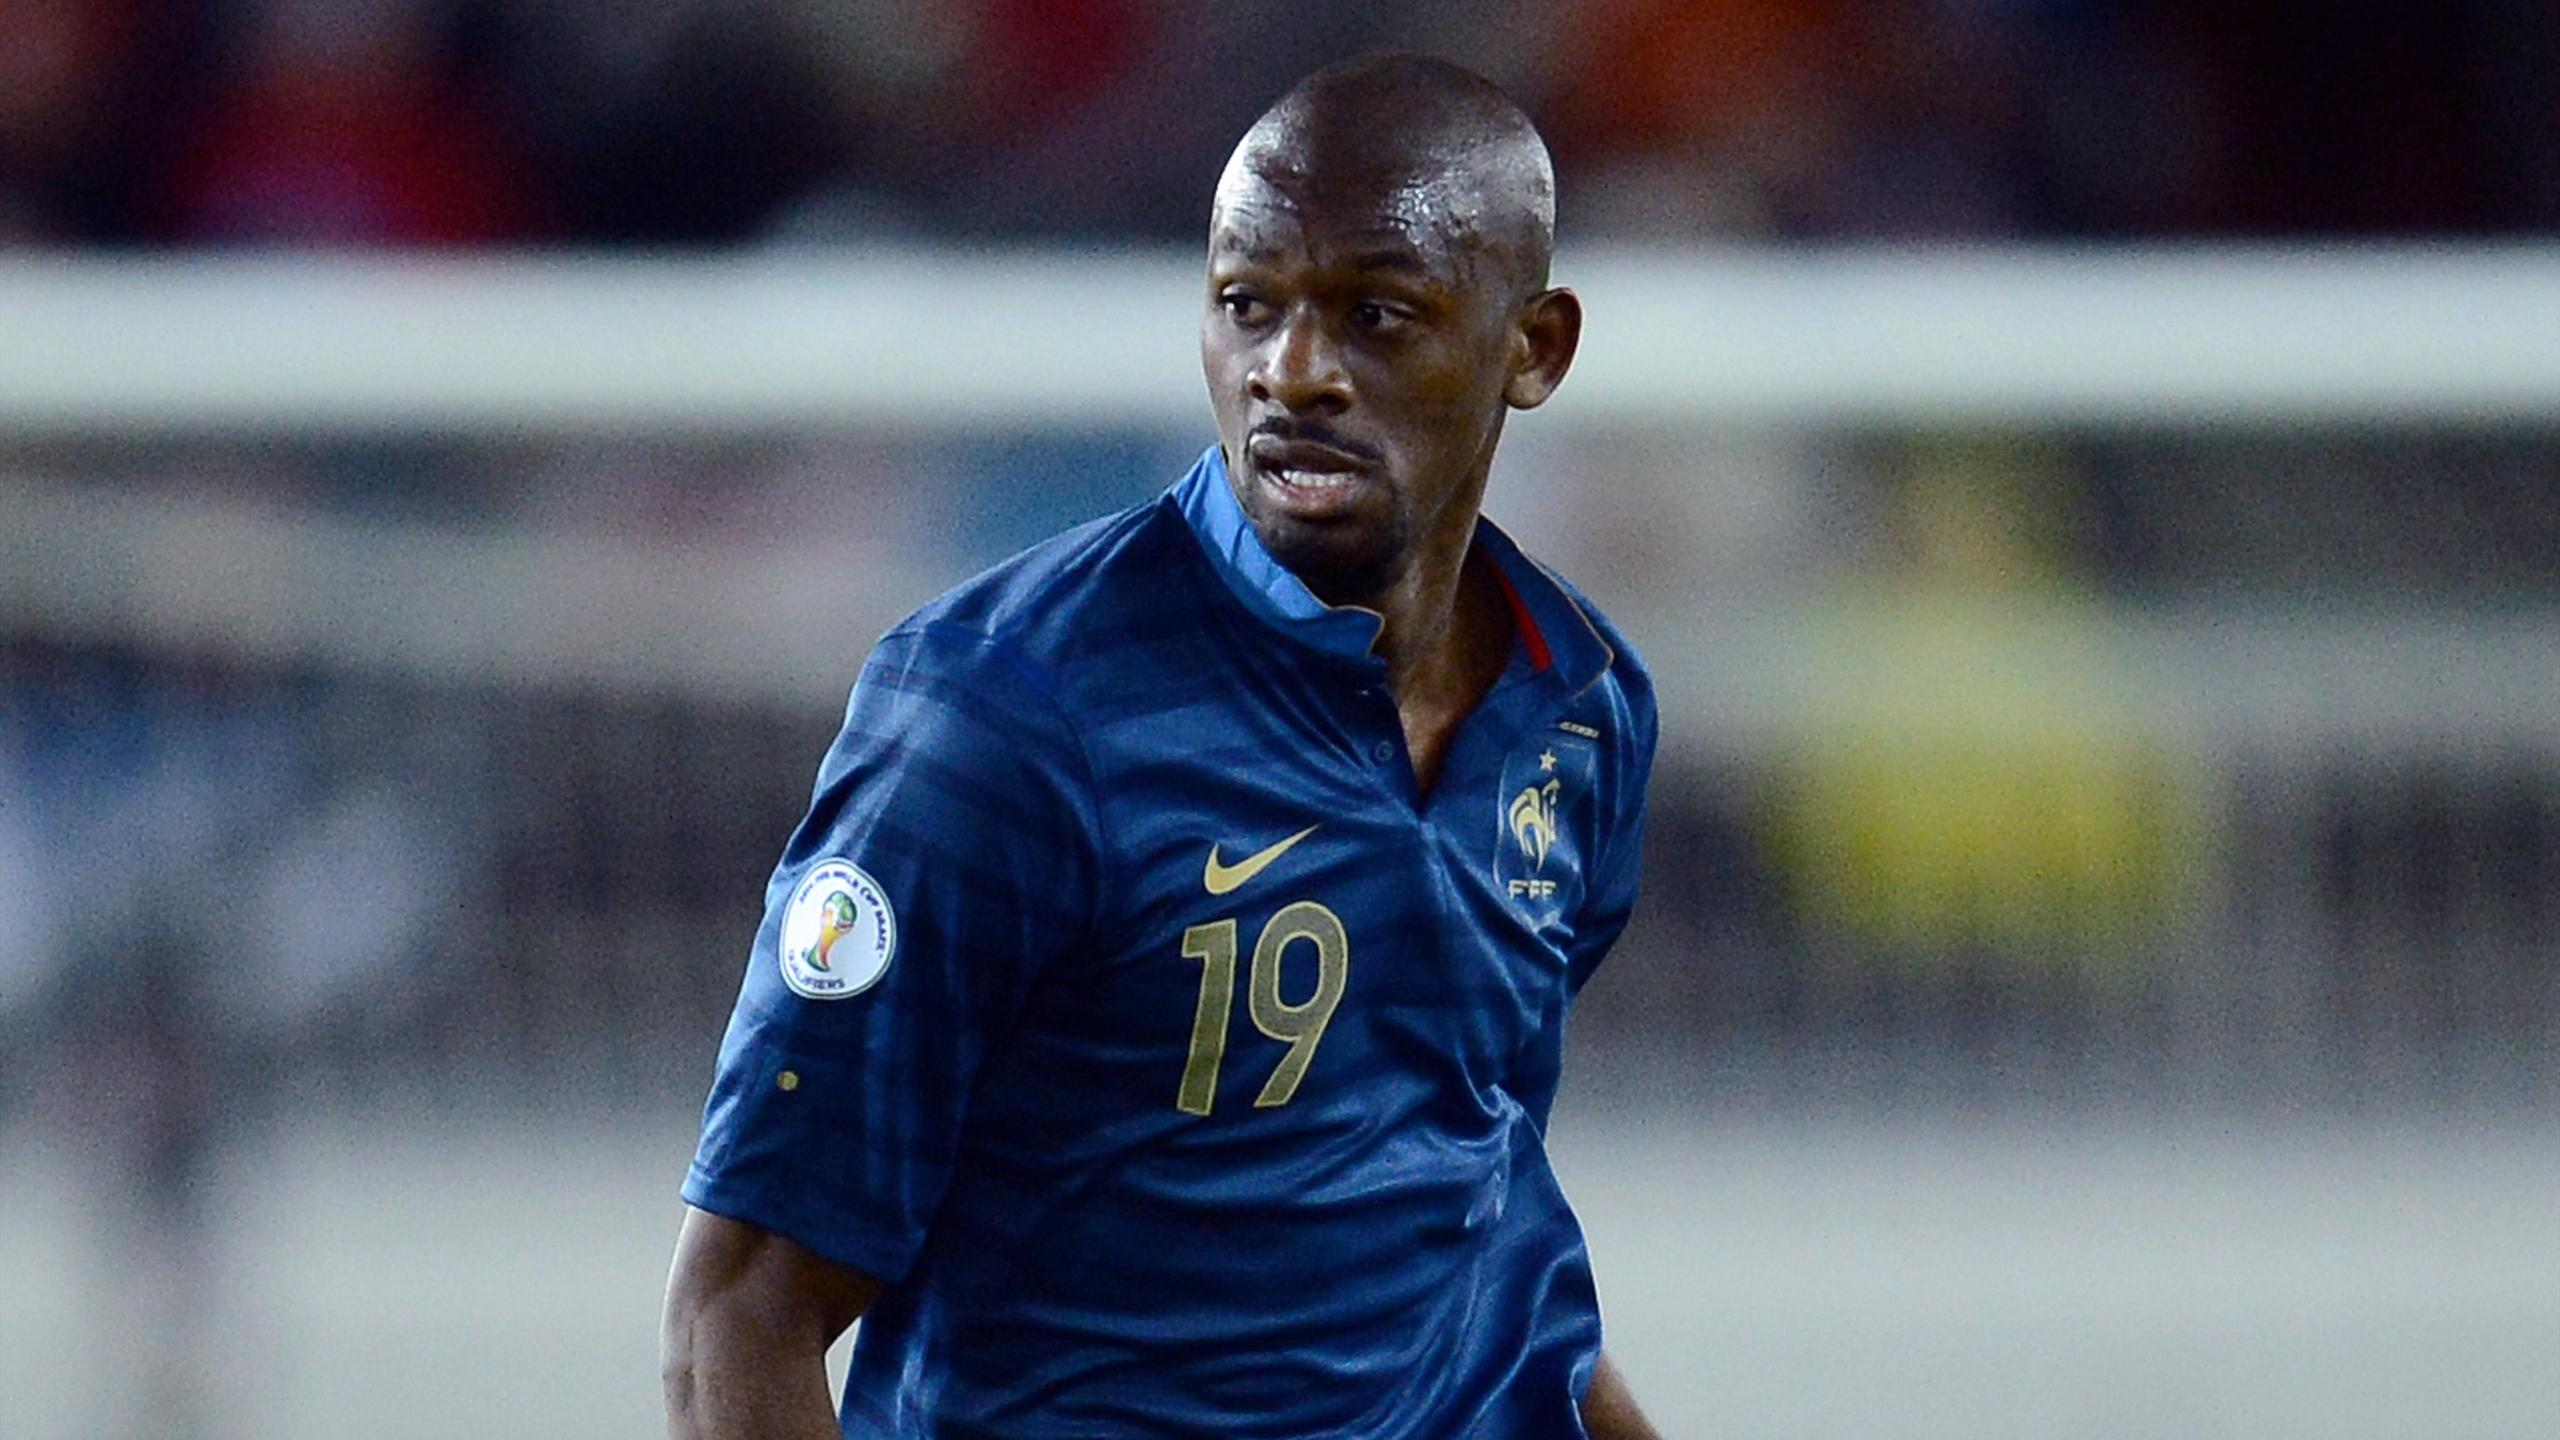 French midfielder Abou Diaby runs with the ball during the World Cup 2014 qualifying football match Finland vs France, on September 7, 2012 at the Olympic Stadium in Helsinki.